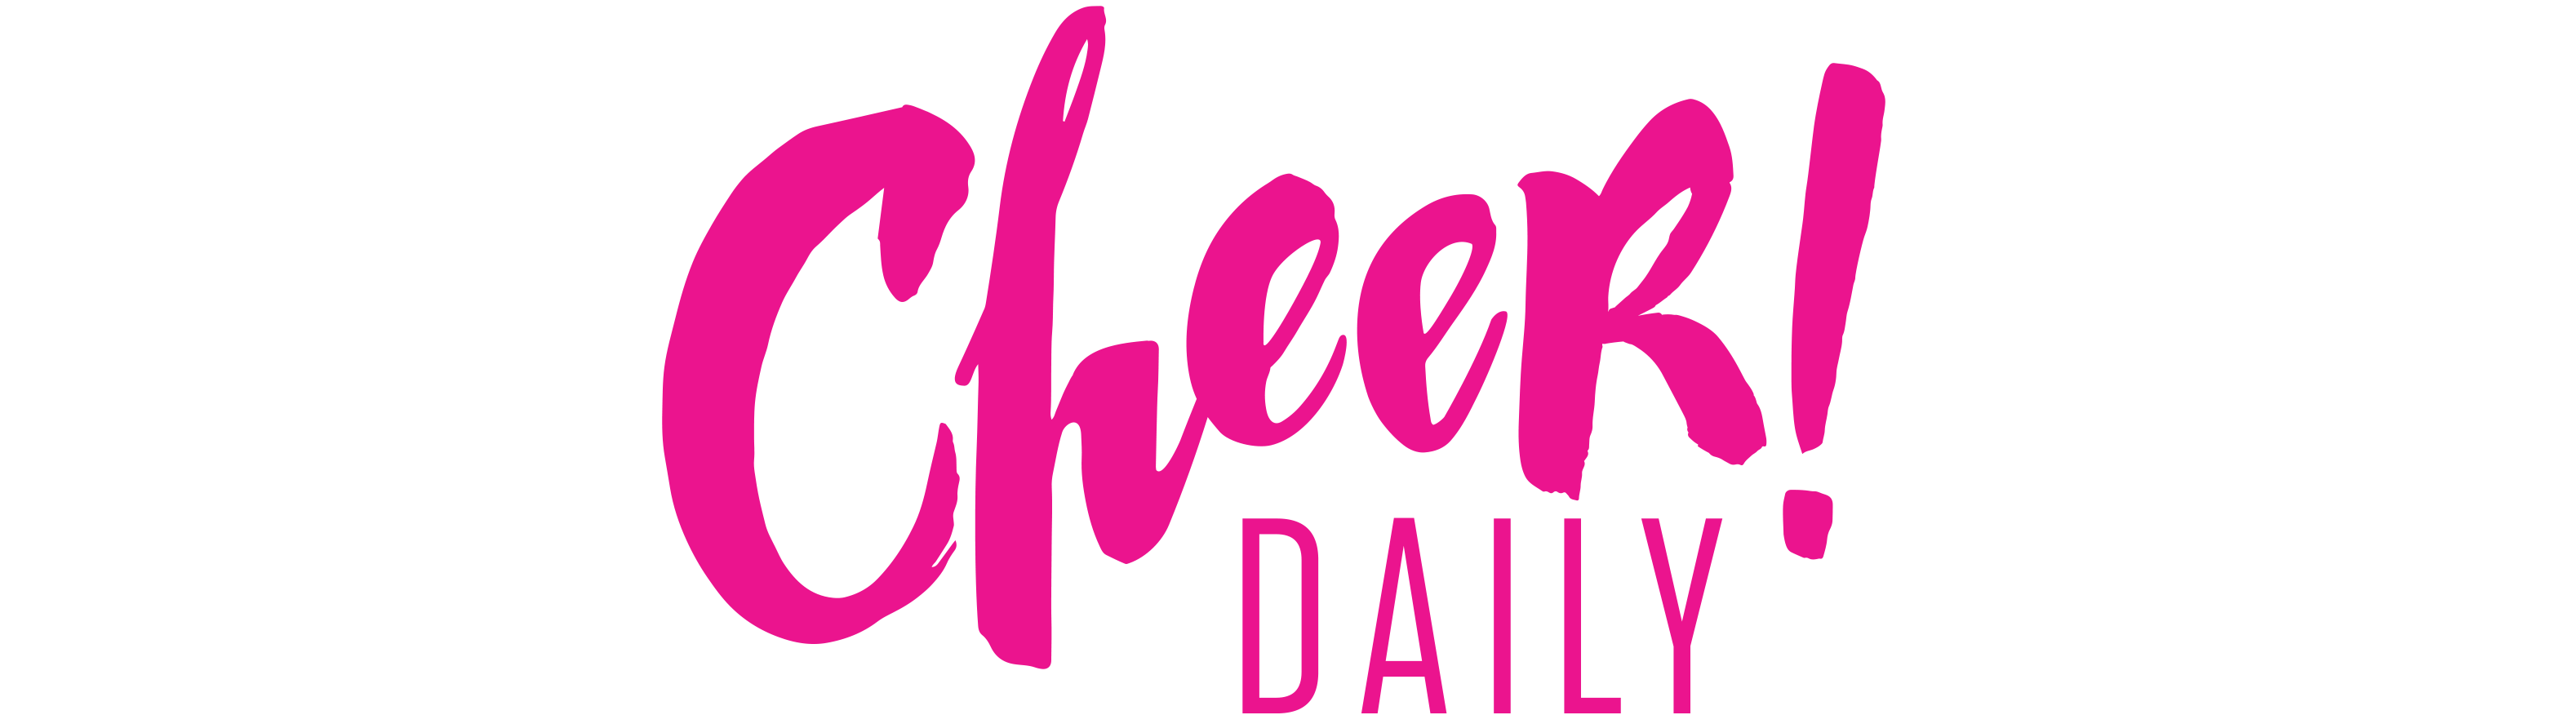 Cheer Daily